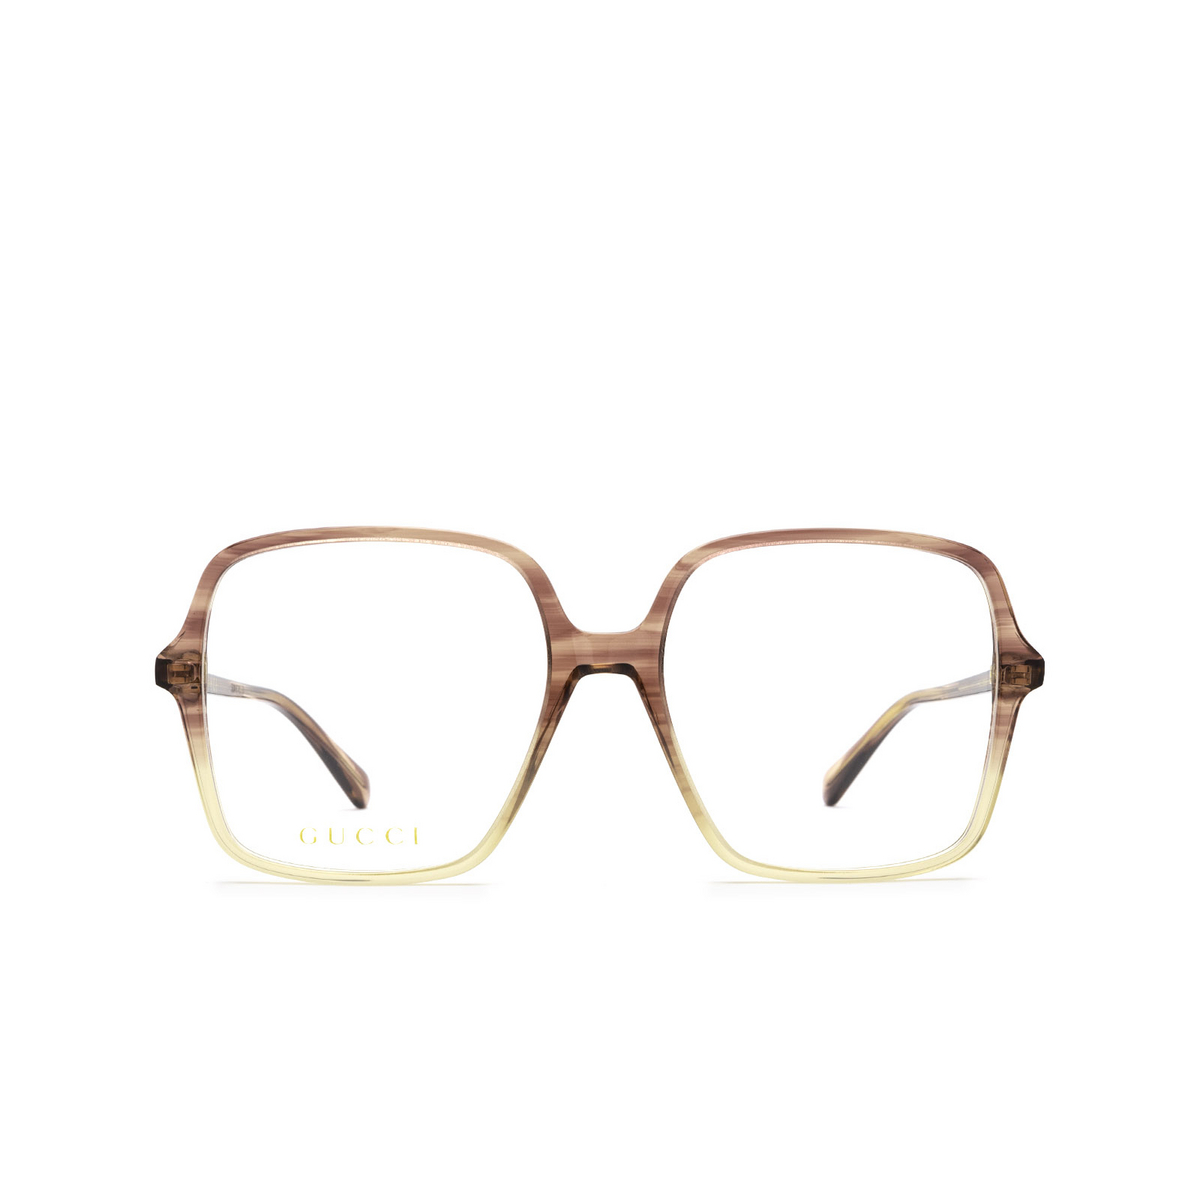 Gucci® Square Eyeglasses: GG1003O color Red Gradient 004 - front view.